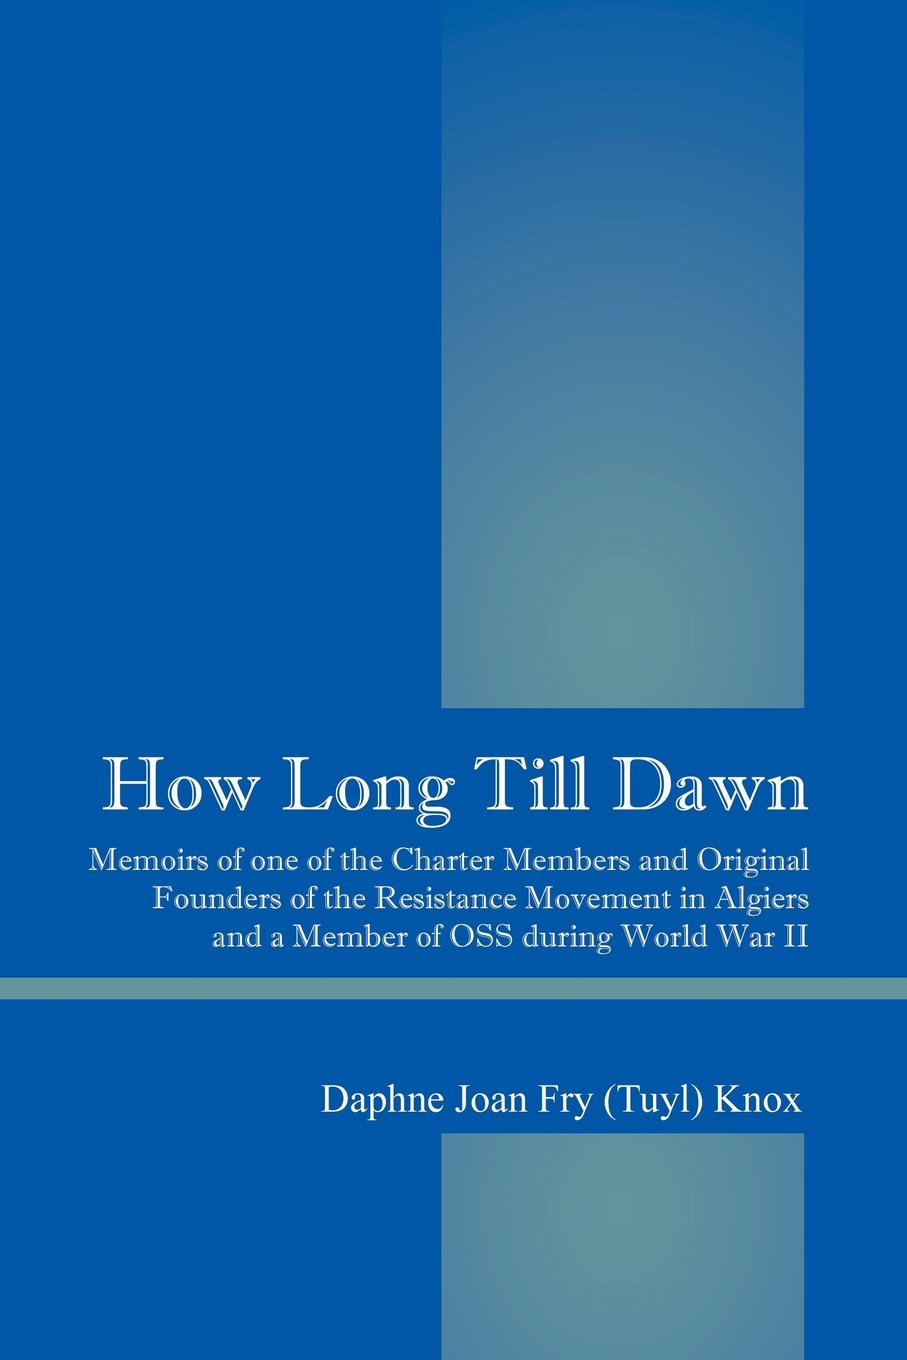 How Long Till Dawn: Memoirs of One of the Charter Members and Original Founders of the Resistance Movement in Algiers and a Member of OSS